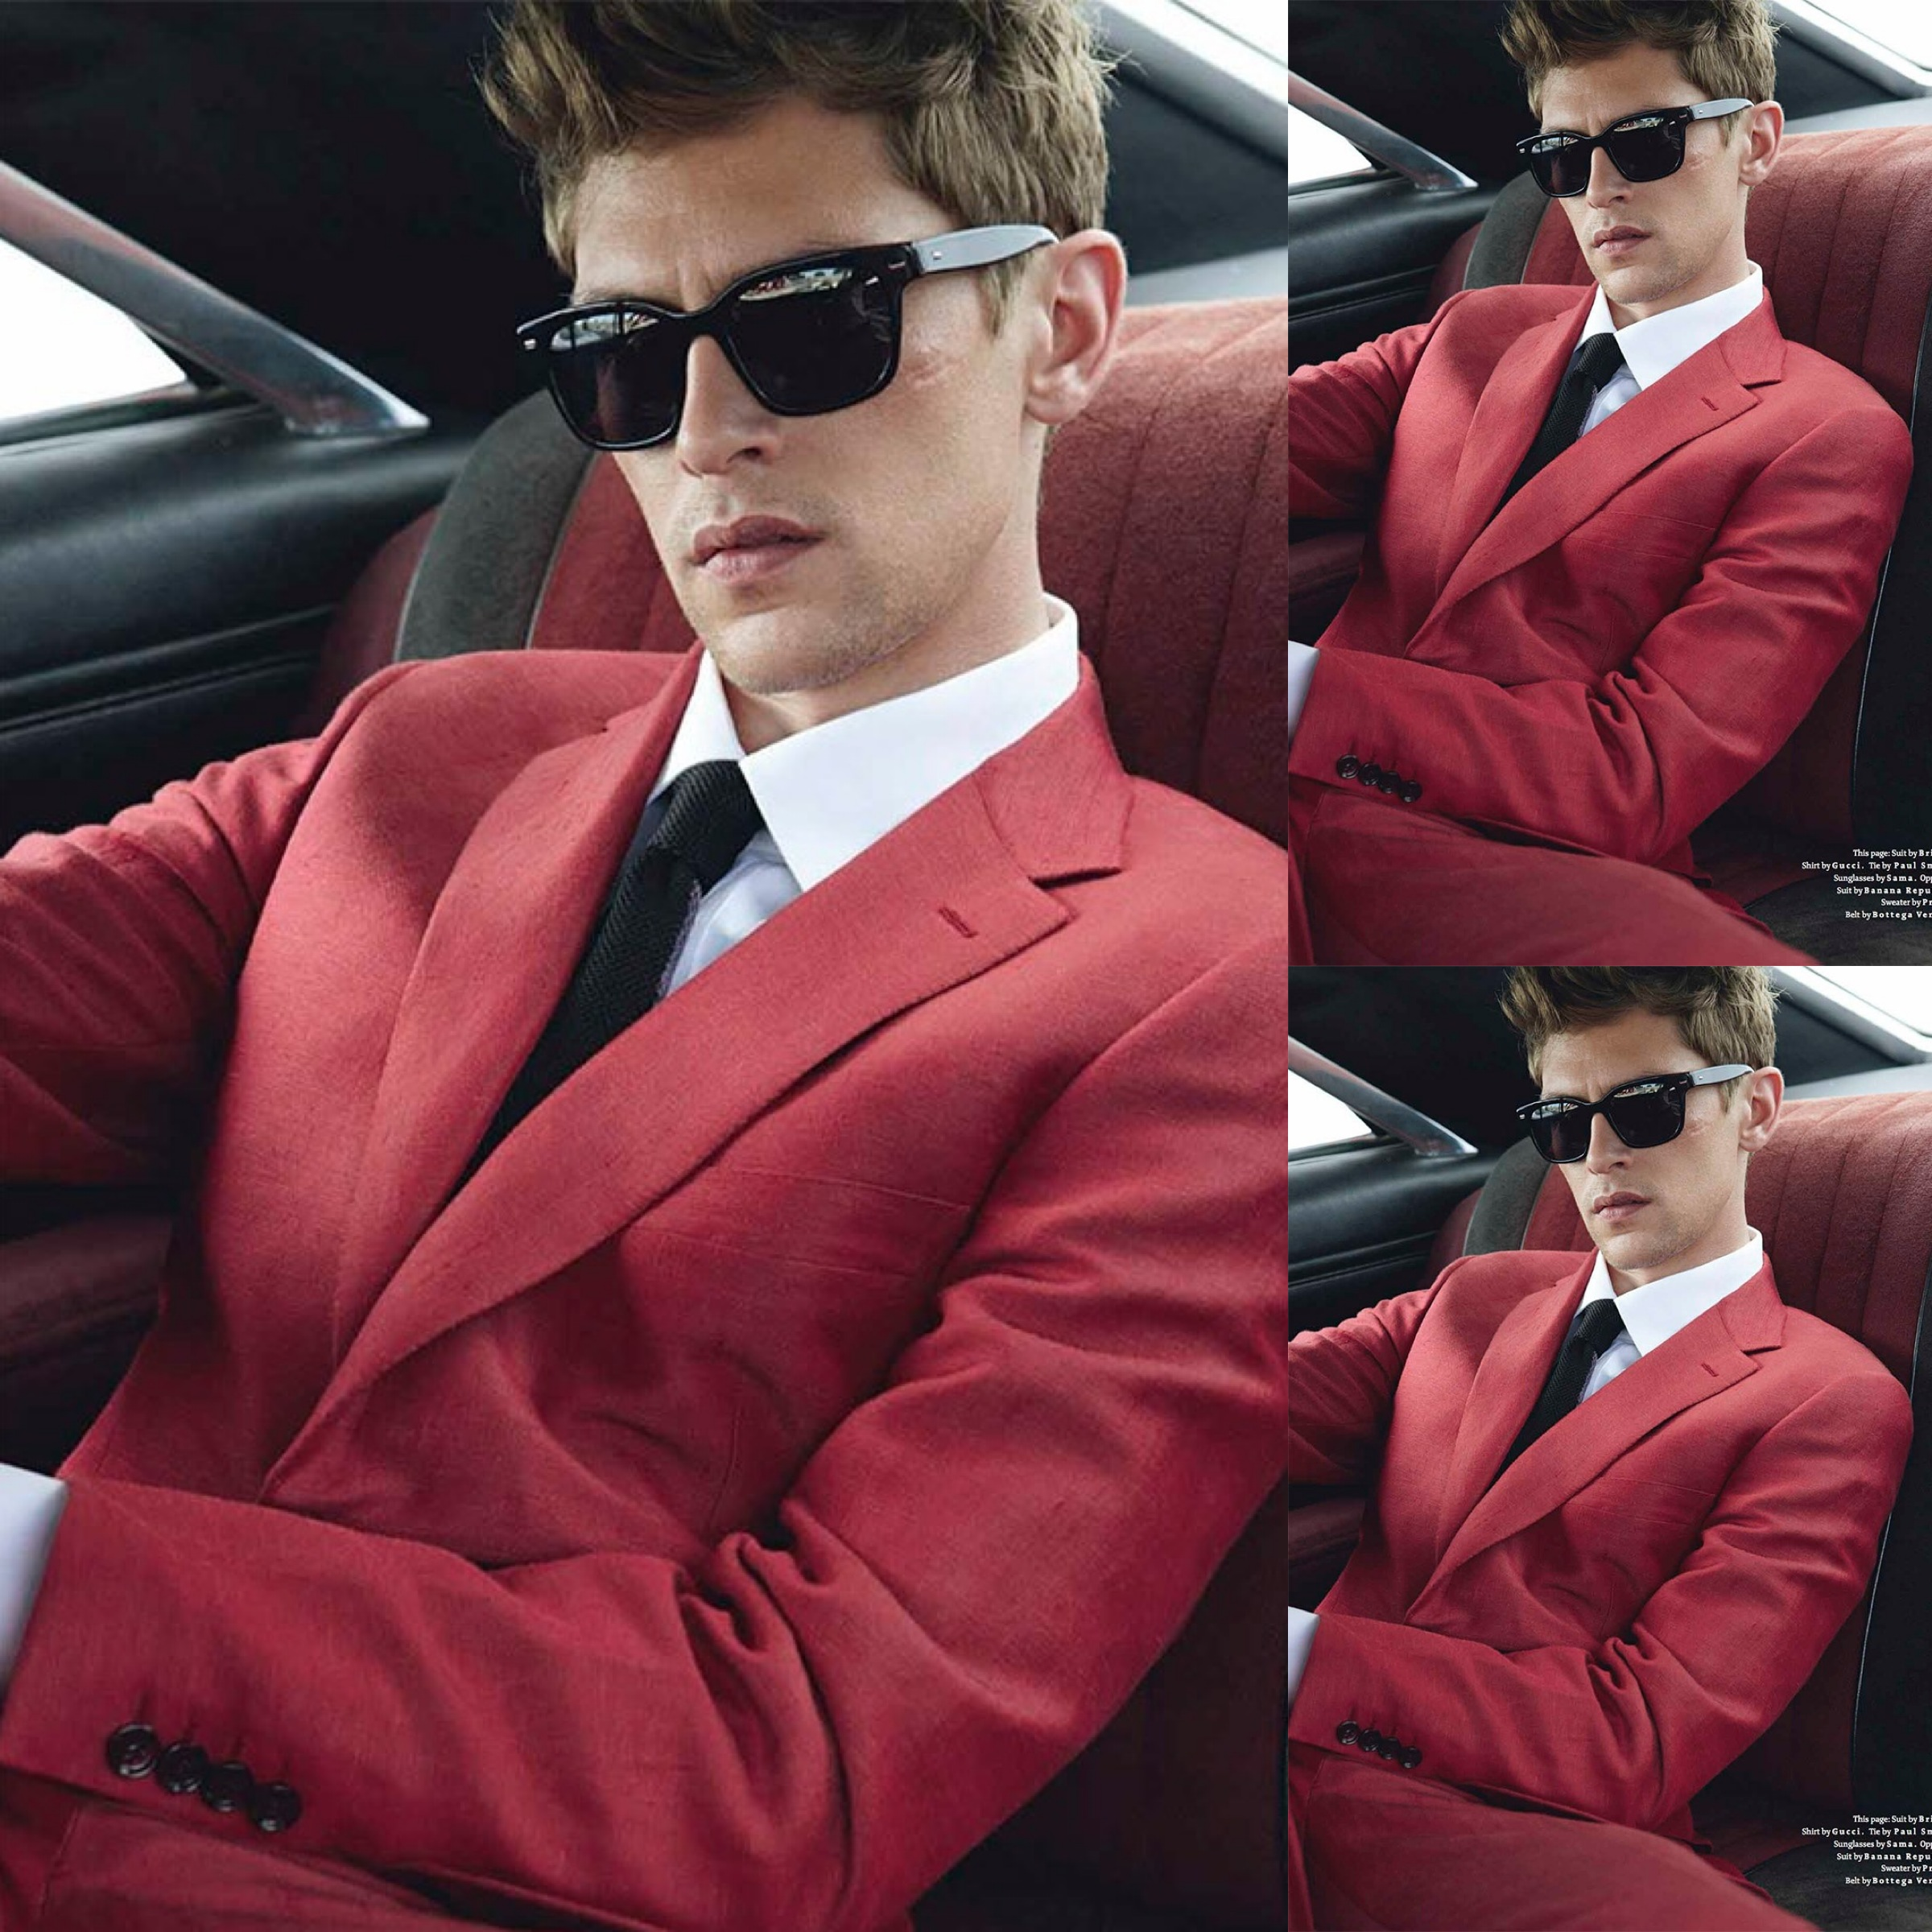 #5 (97 likes) - Mathias Lauridsen for Details Magazine. Suit by Brioni. Shirt by Gucci. Tie by Paul Smith. Sunglasses by Sama.